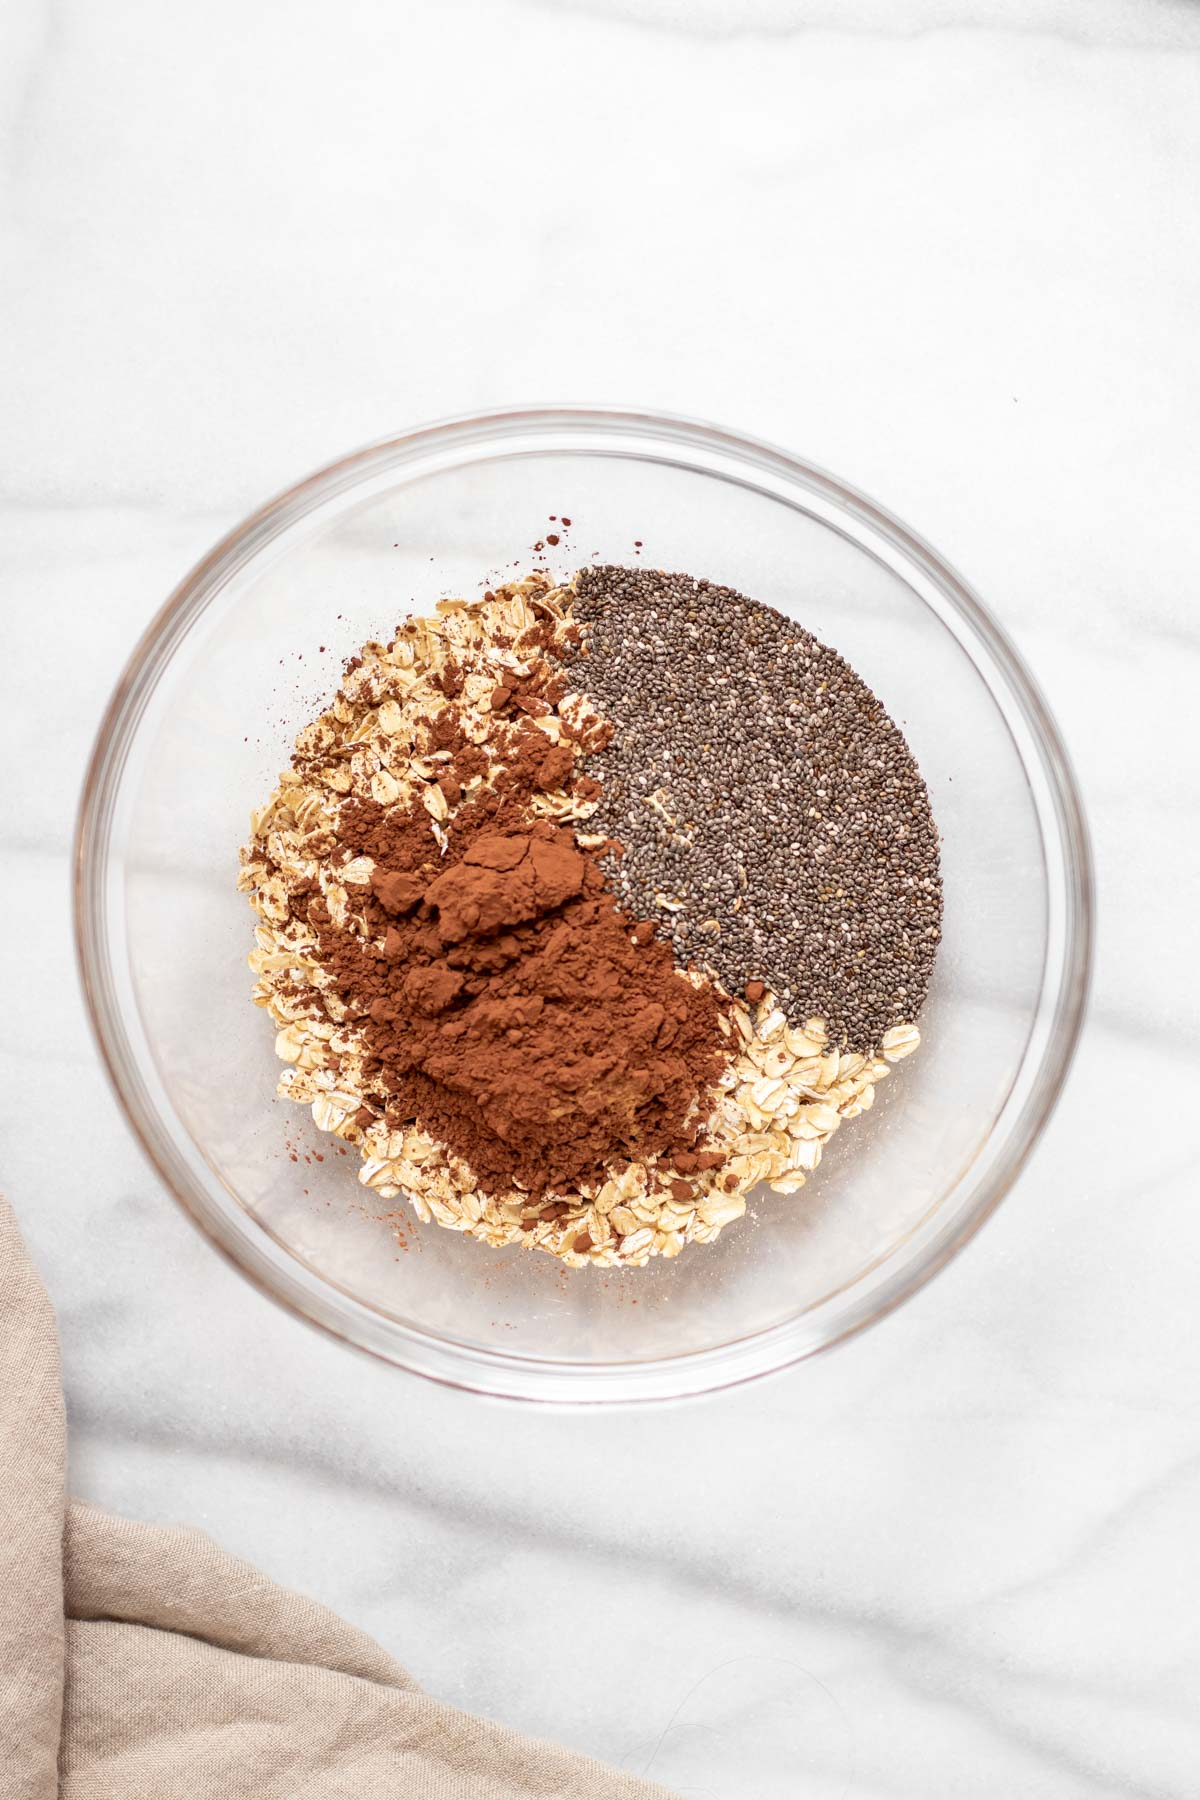 Oats, chia seeds and cocoa in a glass bowl.